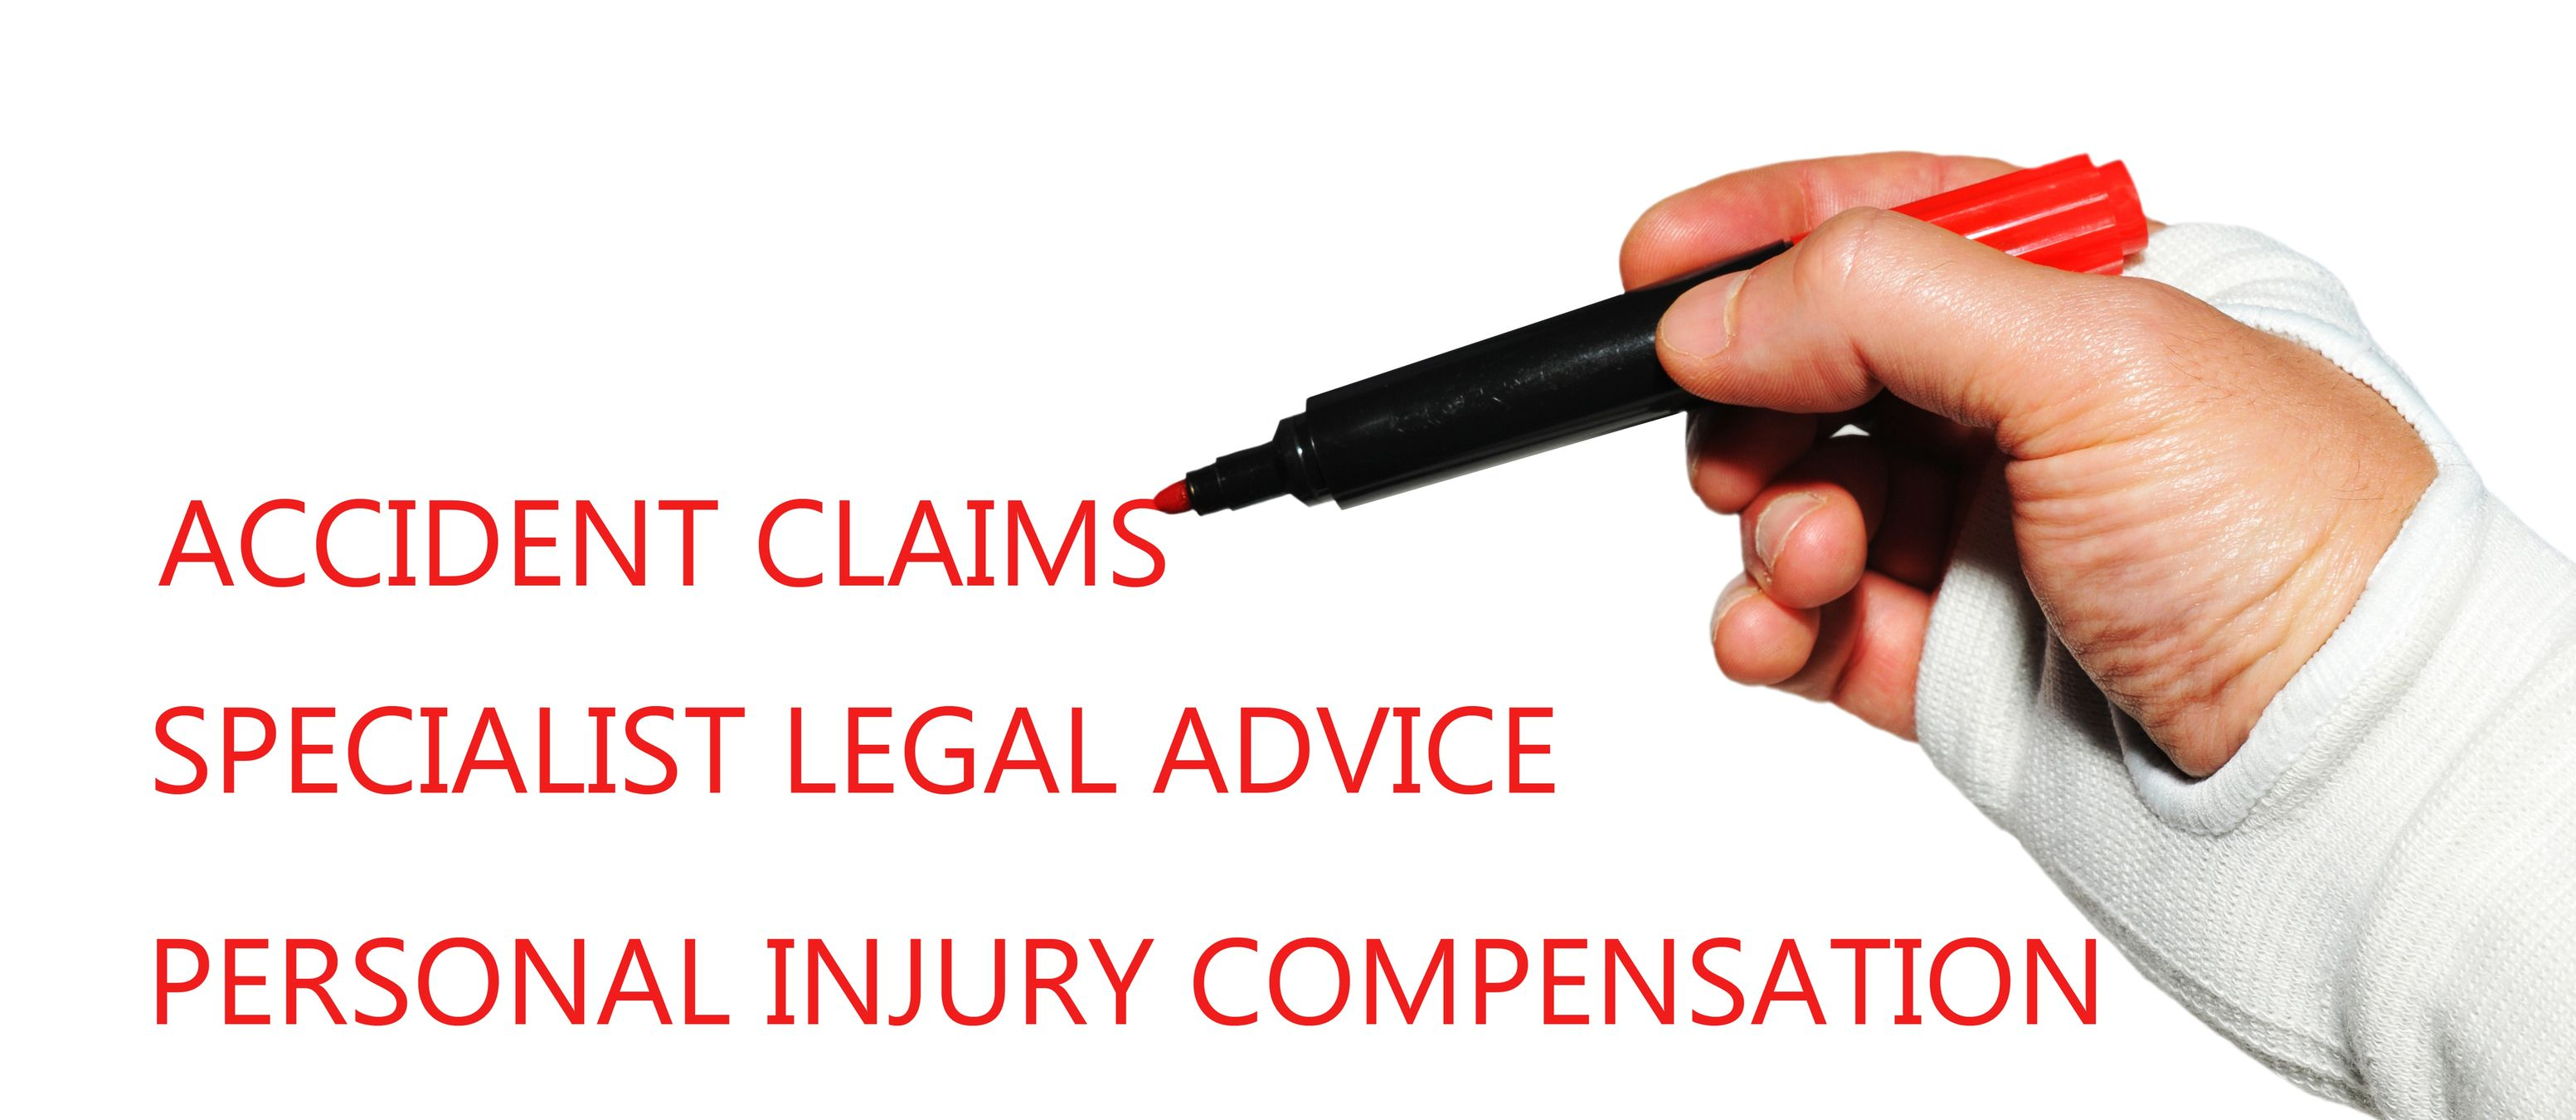 Accident and Personal Injury compensation cases in UAE